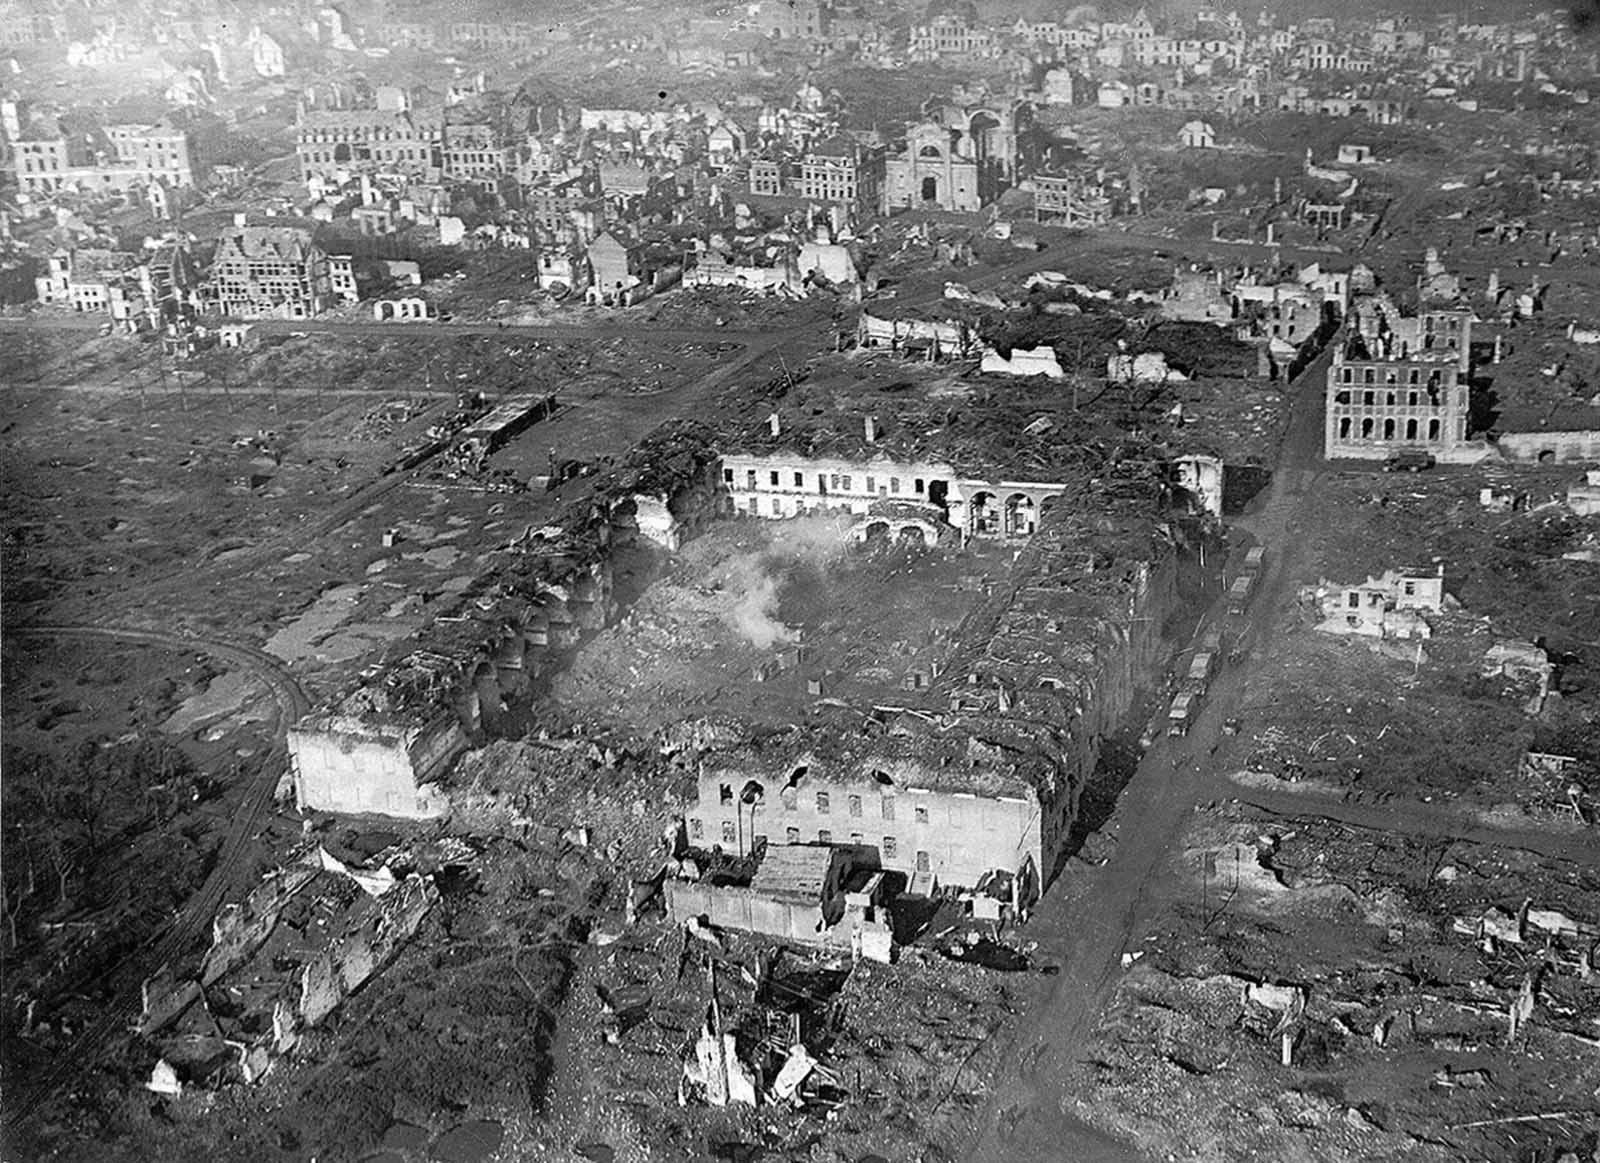 The bombarded barracks at Ypres, viewed from 500 ft.